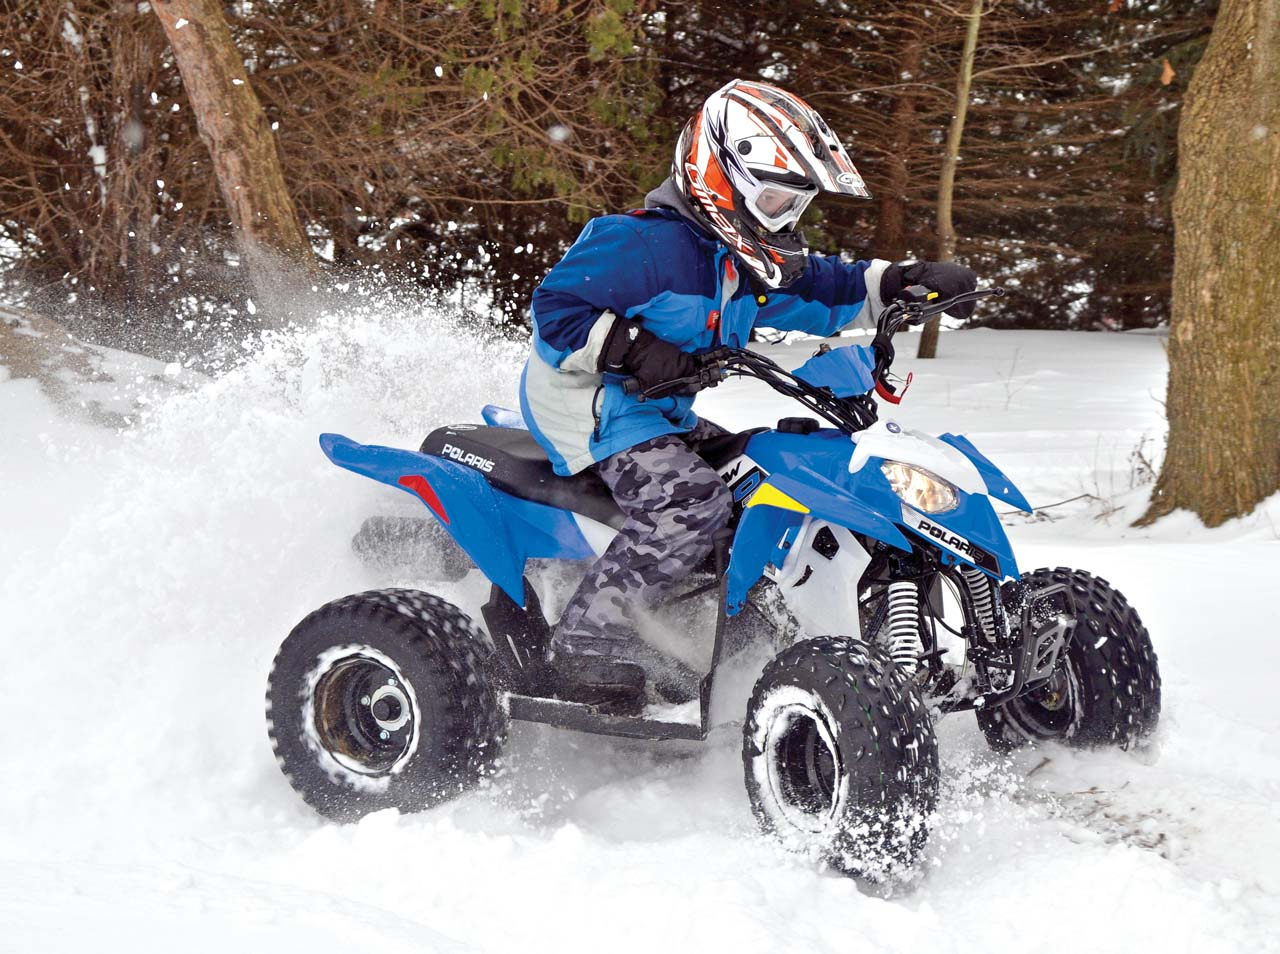 2017 polaris outlaw110 front-right blue_ riding in-